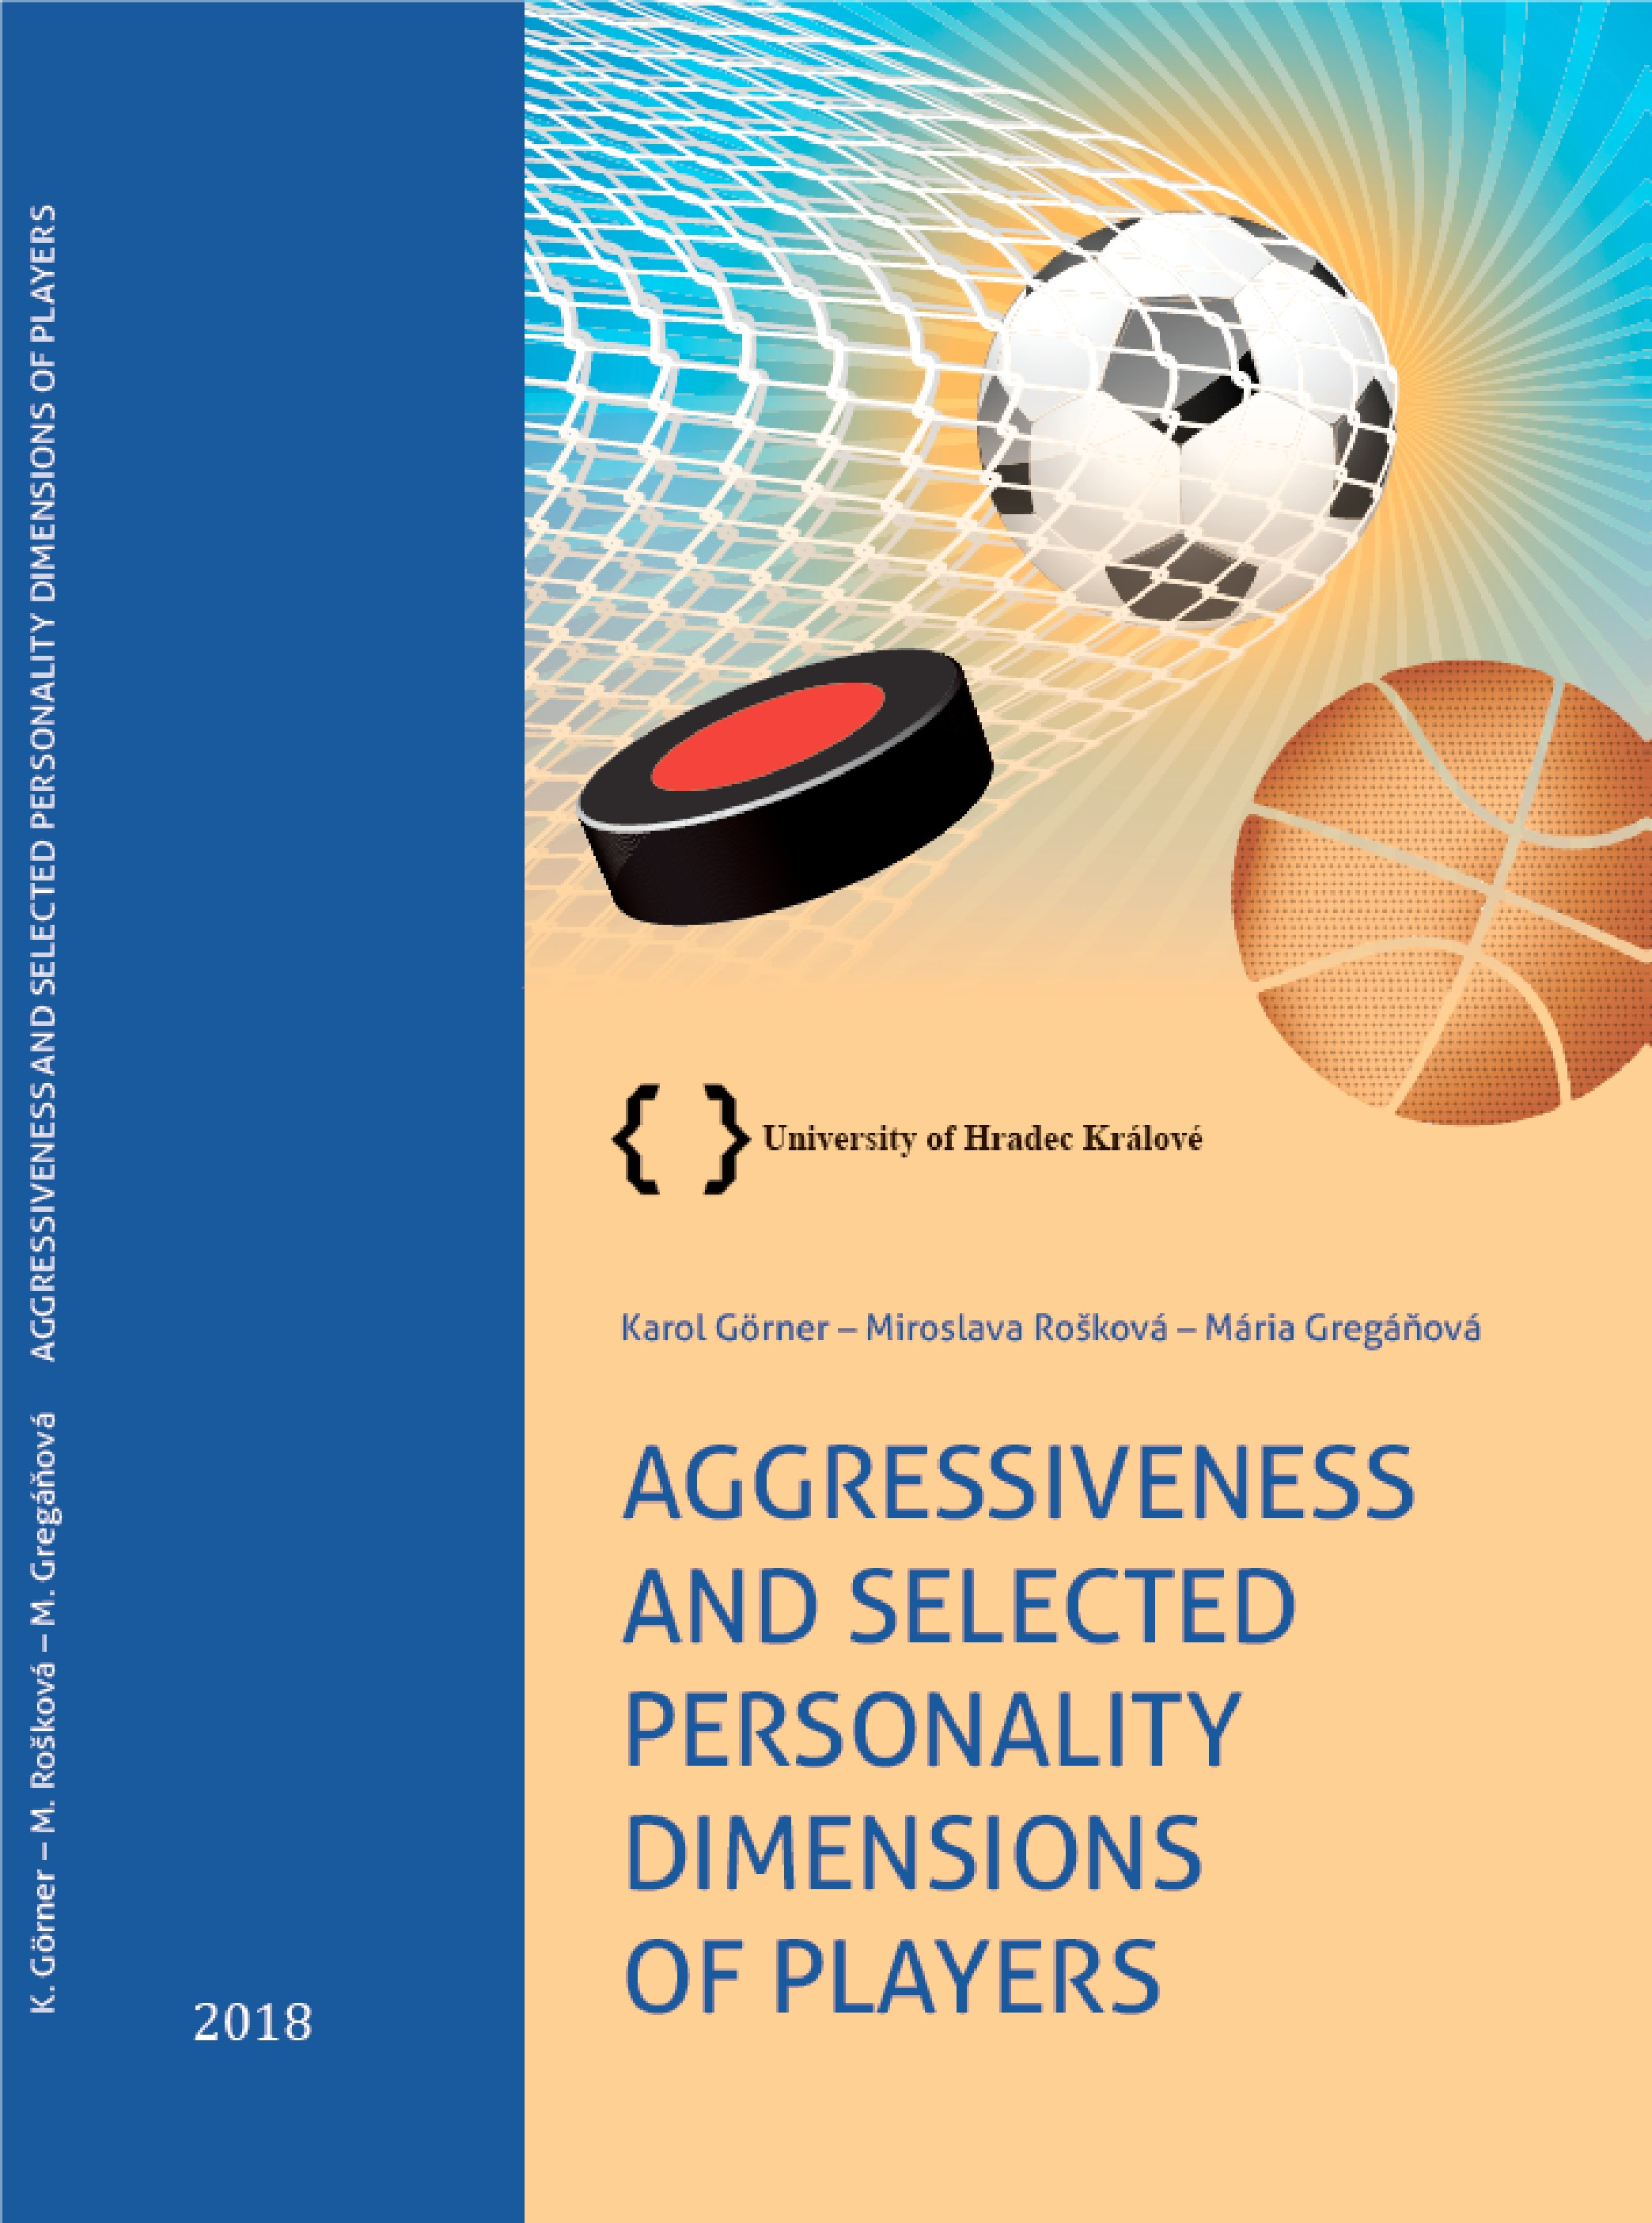 Agressiveness and selected personality dimensions of players